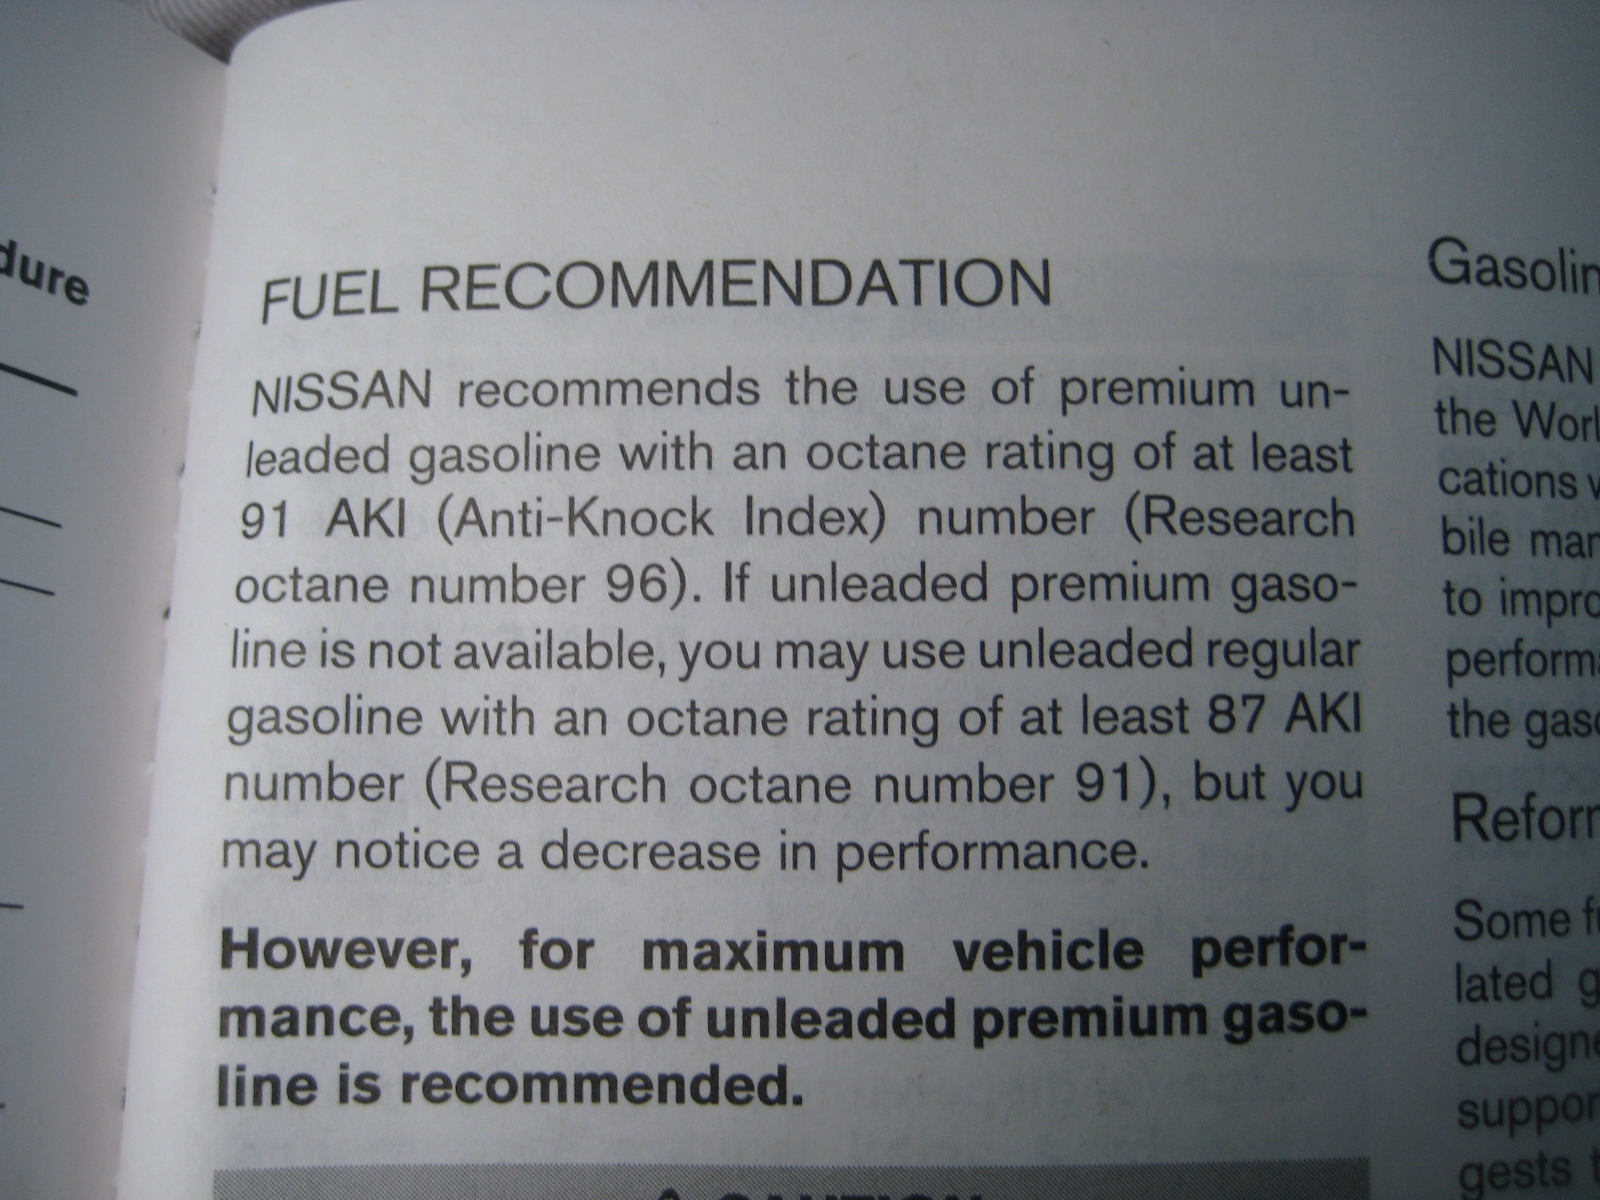 Nissan Sentra Owners Manual: Fuel recommendation